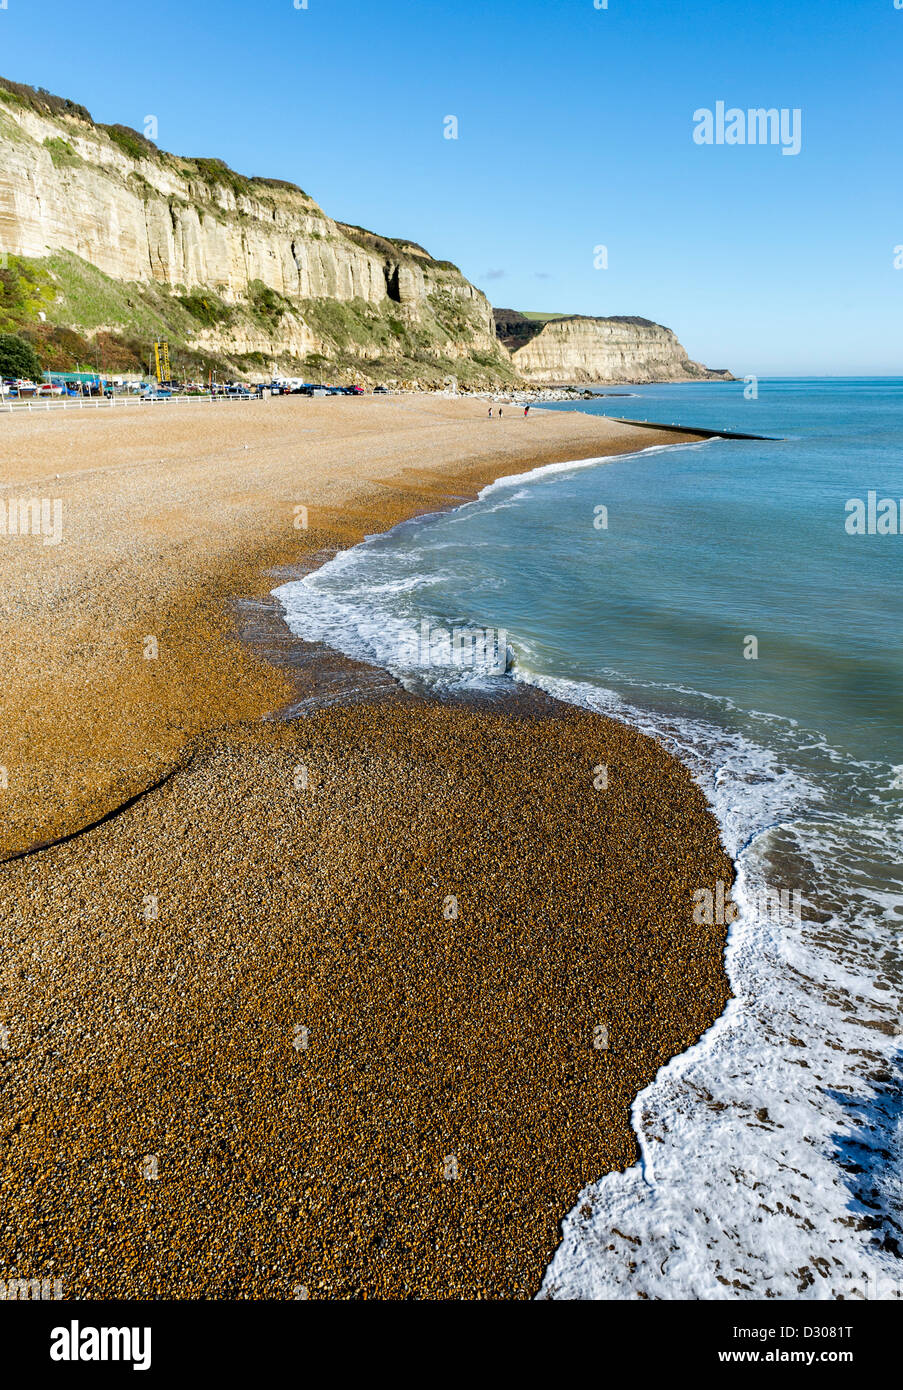 Beach at Hastings in East Sussex, England, UK - Stock Image